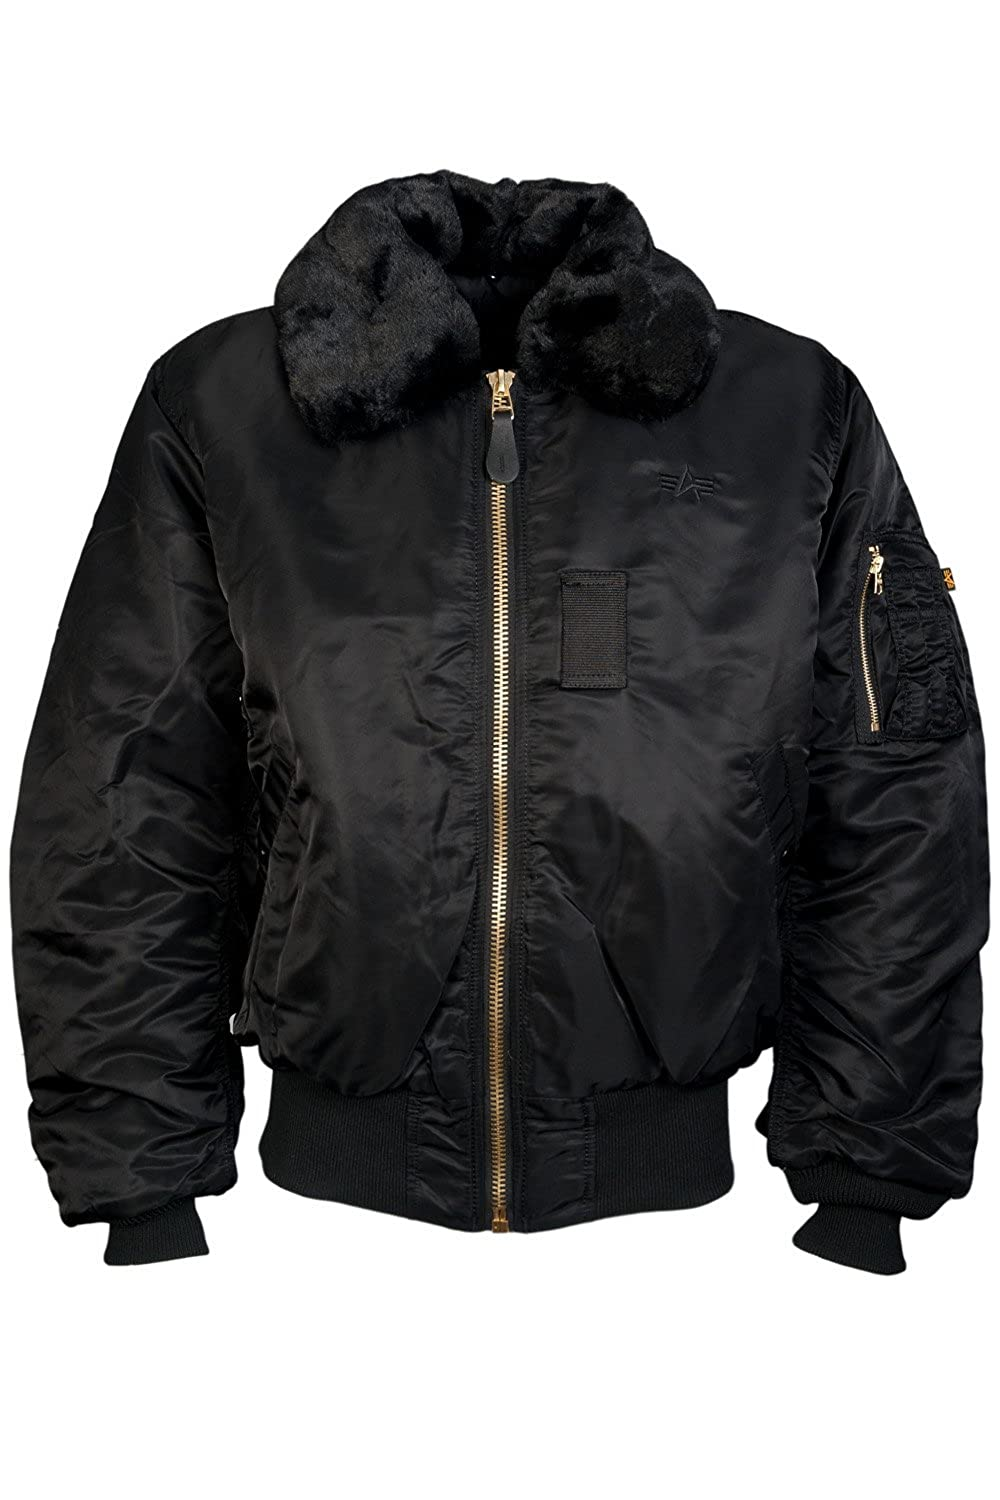 Alpha Industries B 15 Winterjacke Black bestellen